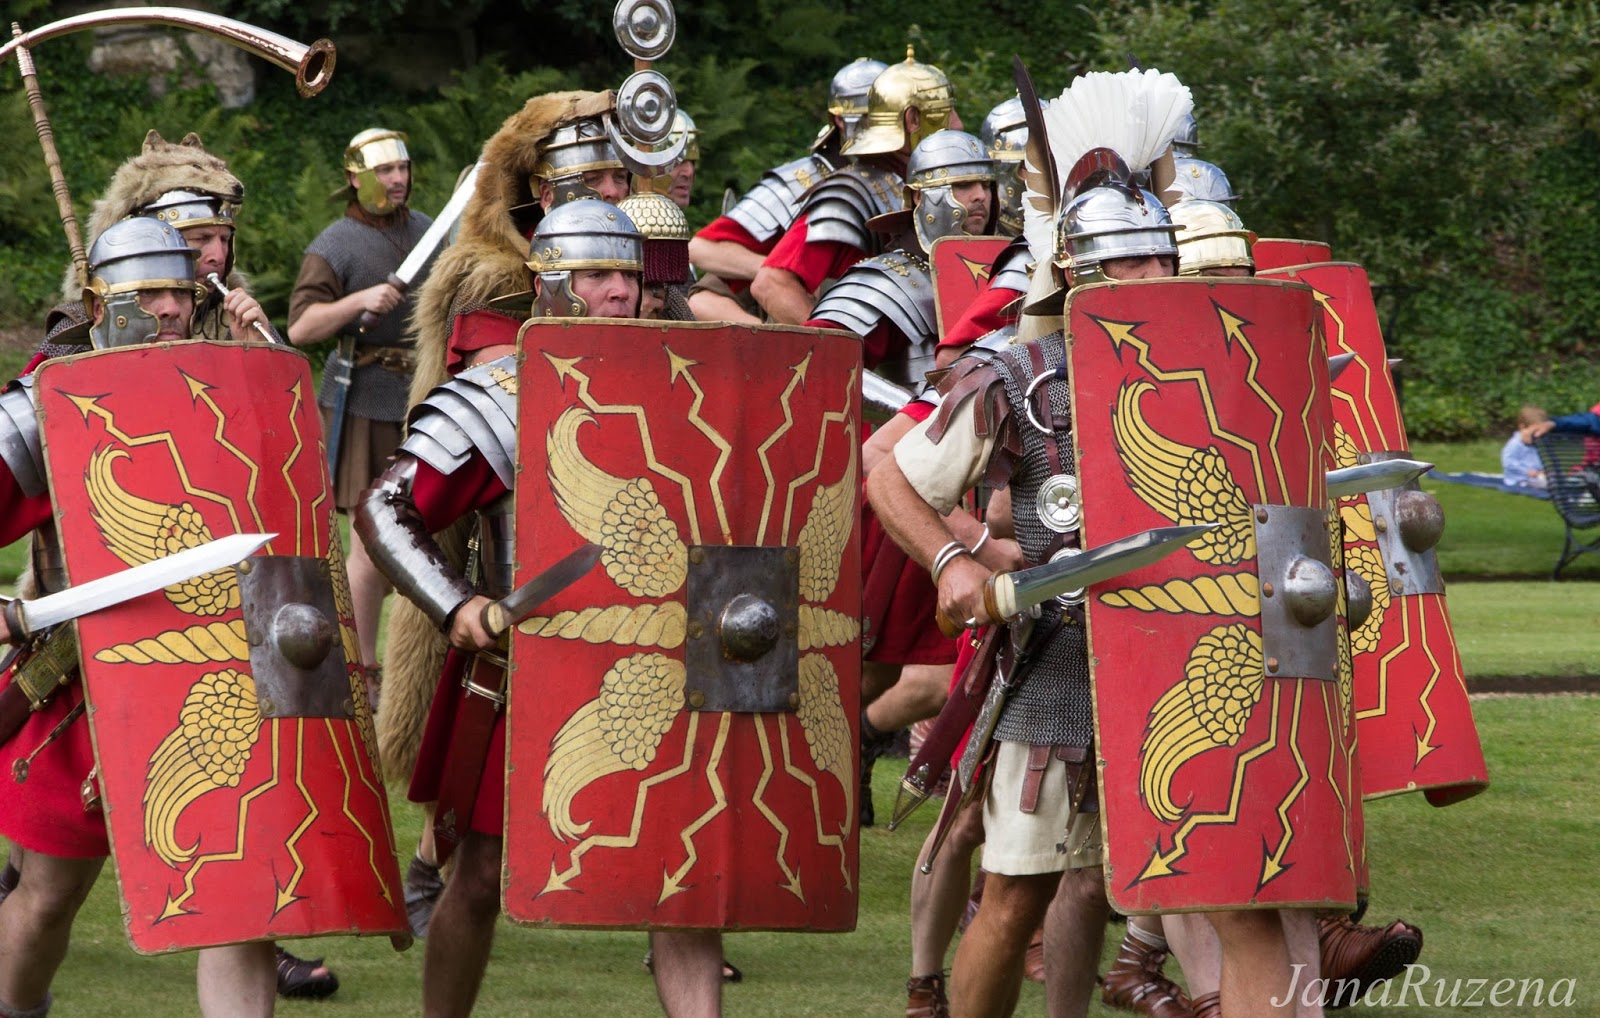 What was life like in the Roman army?